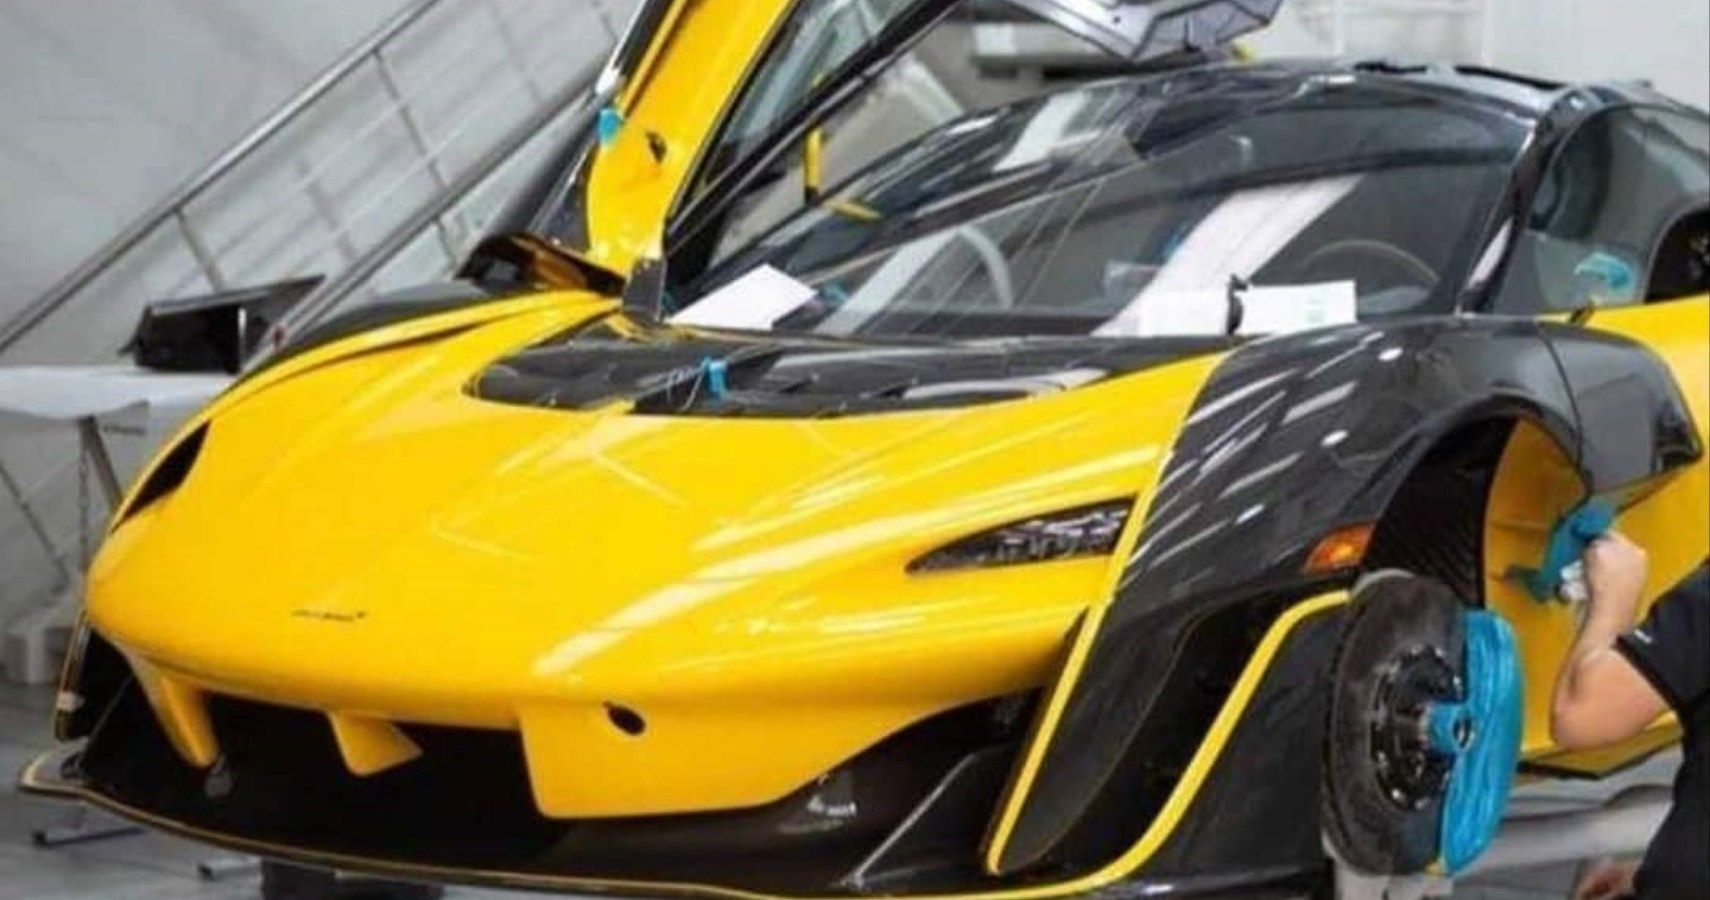 Get A Glimpse Of This McLaren Sabre In Yellow And Black Livery